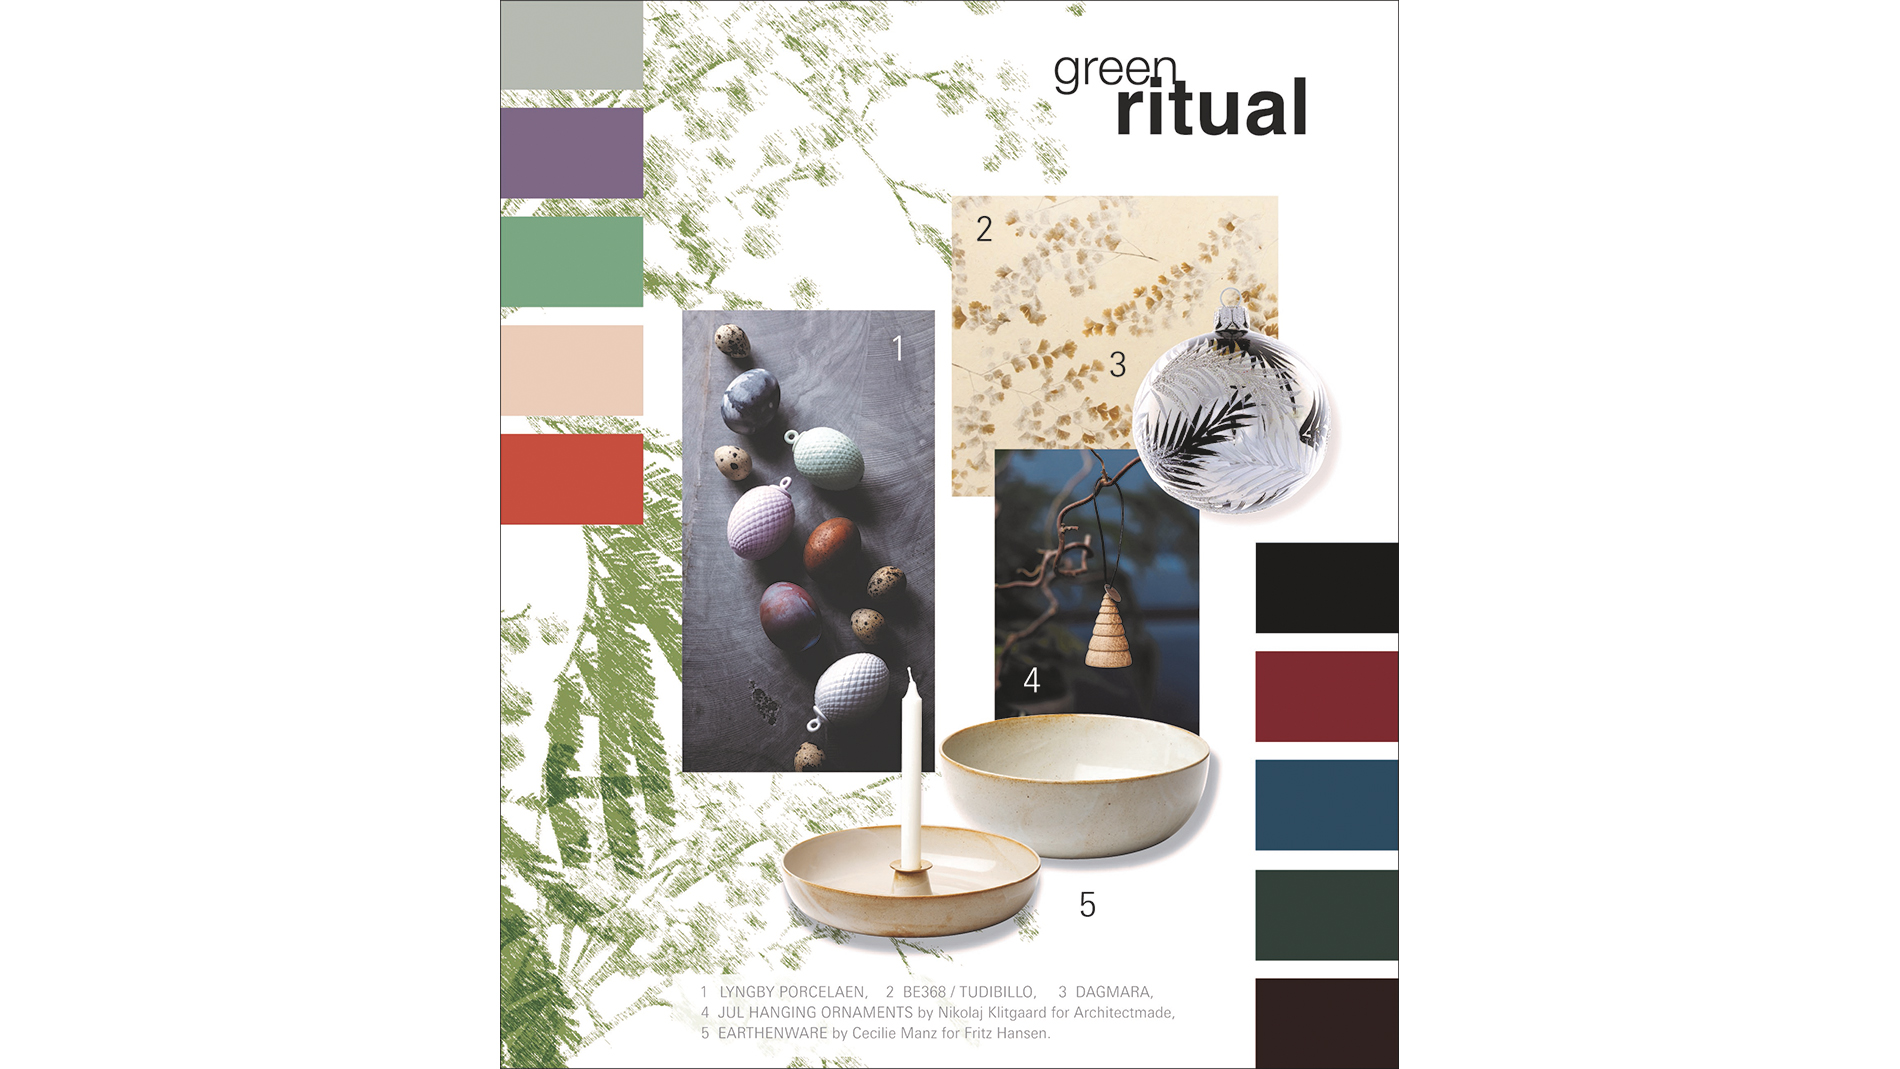 Christmasworld Trends 2020/21: green ritual